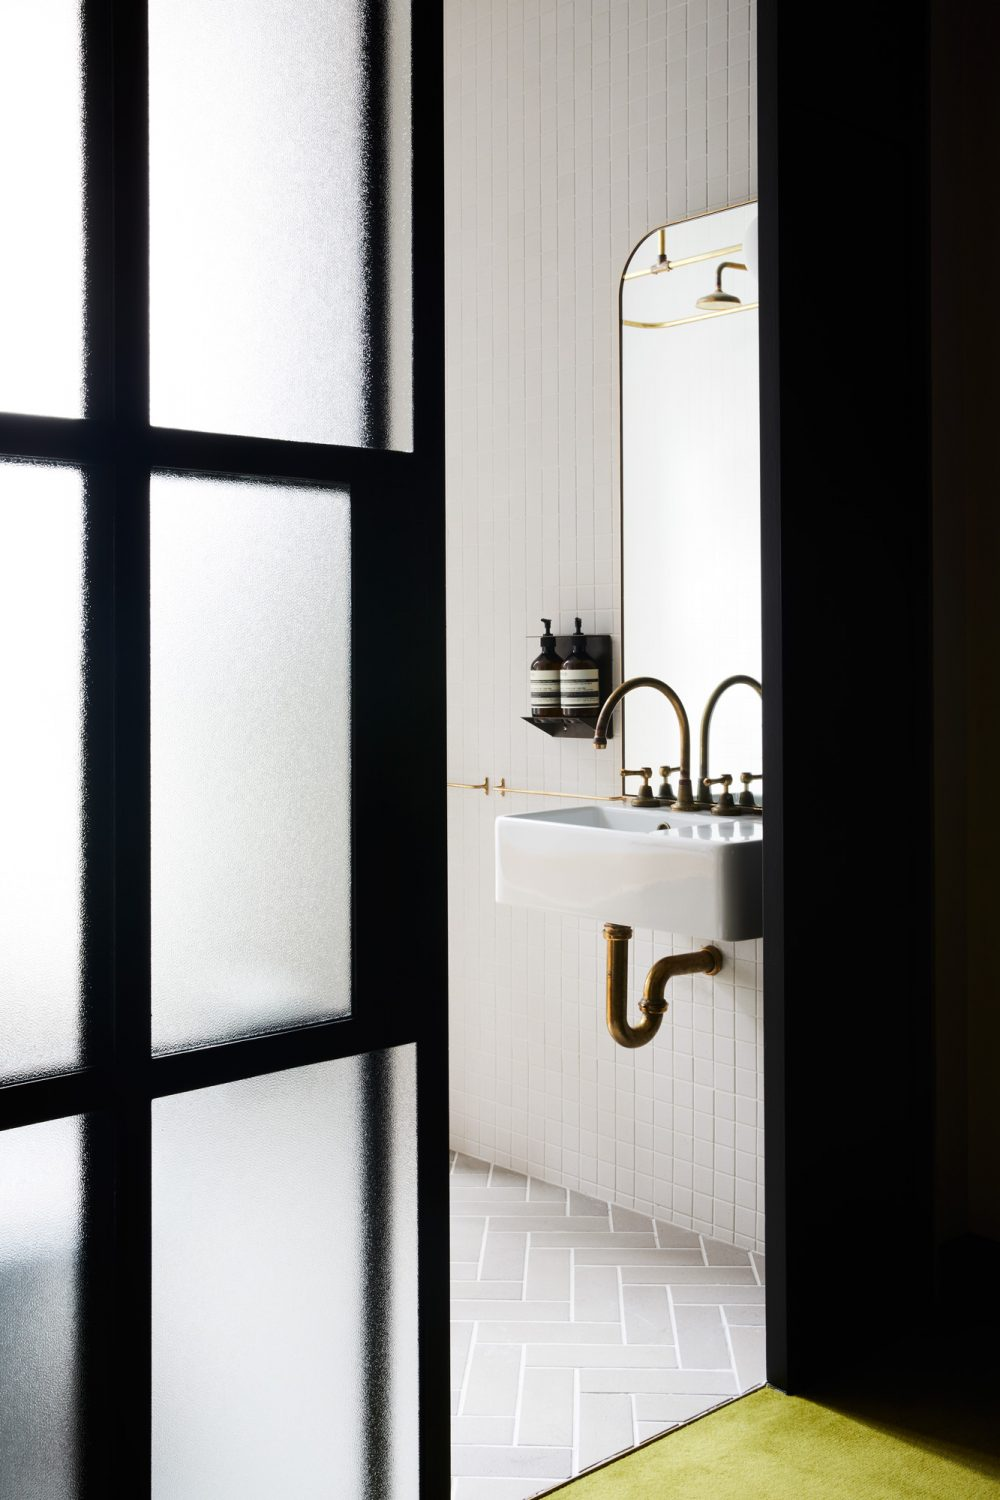 Currently Obsessing Over Wall-Mounted Bathroom Sinks, and Here's Why | Hunker